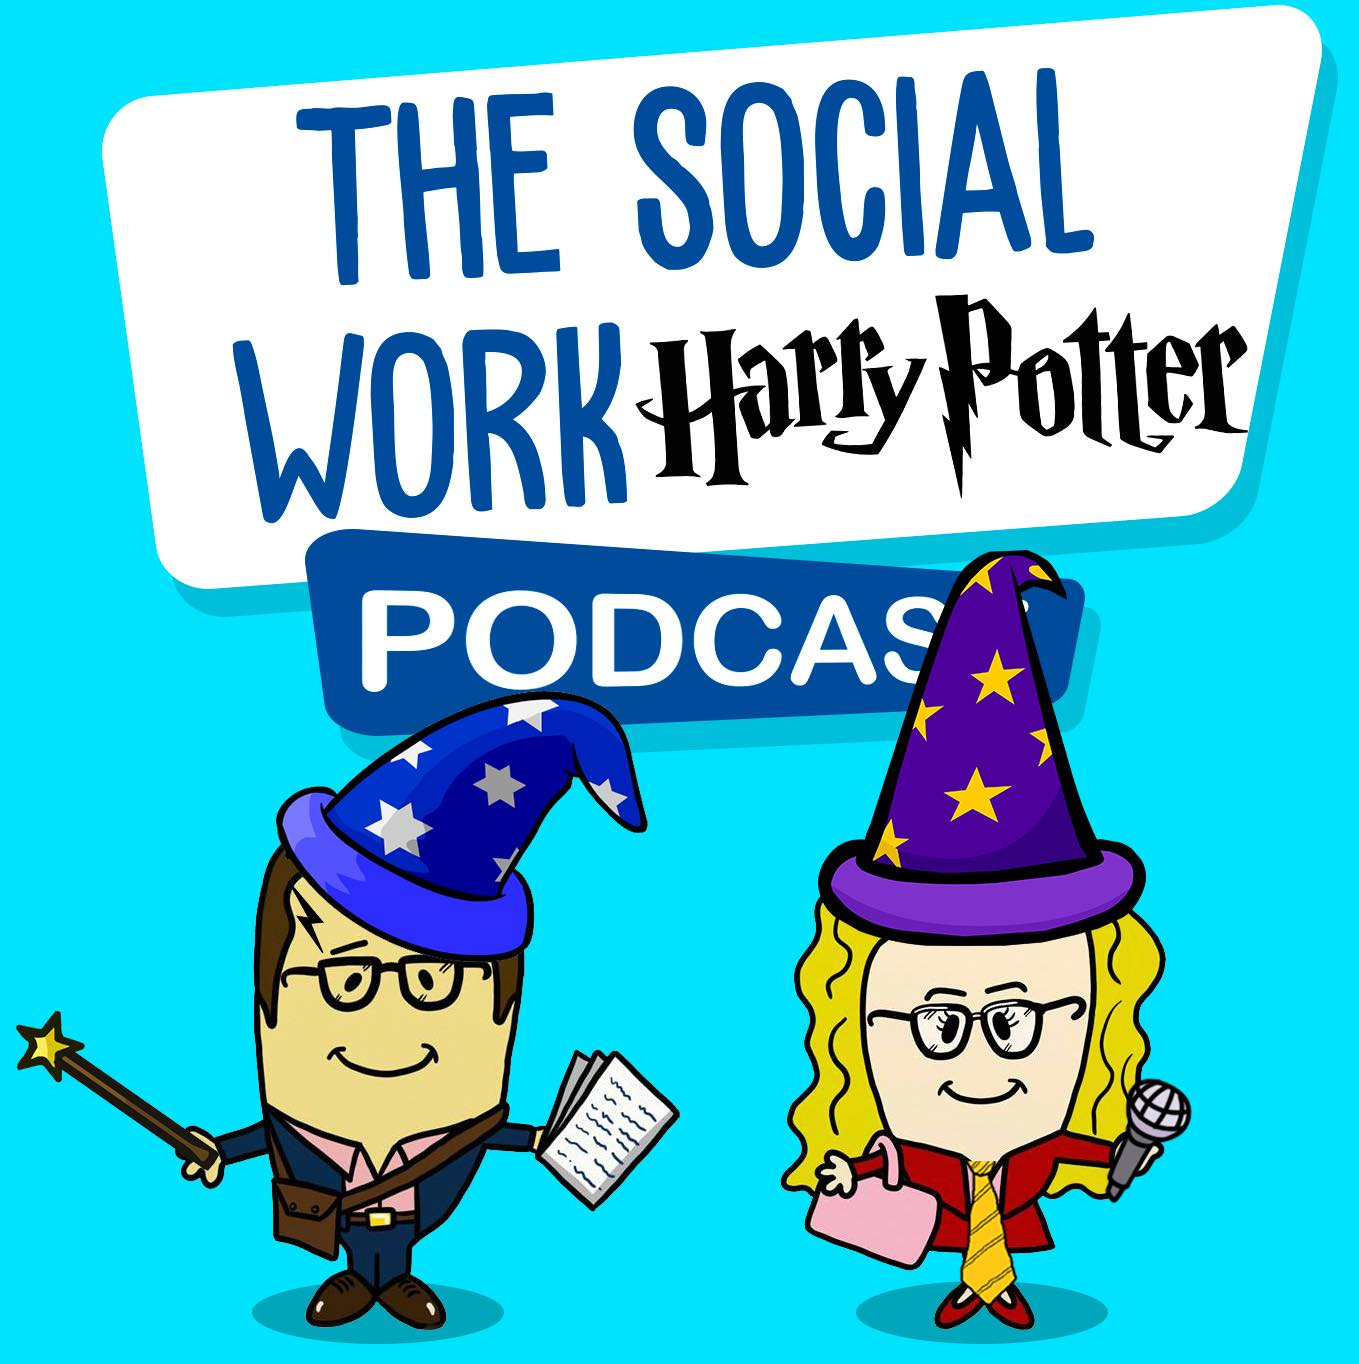 The Social Work Harry Potter Podcast